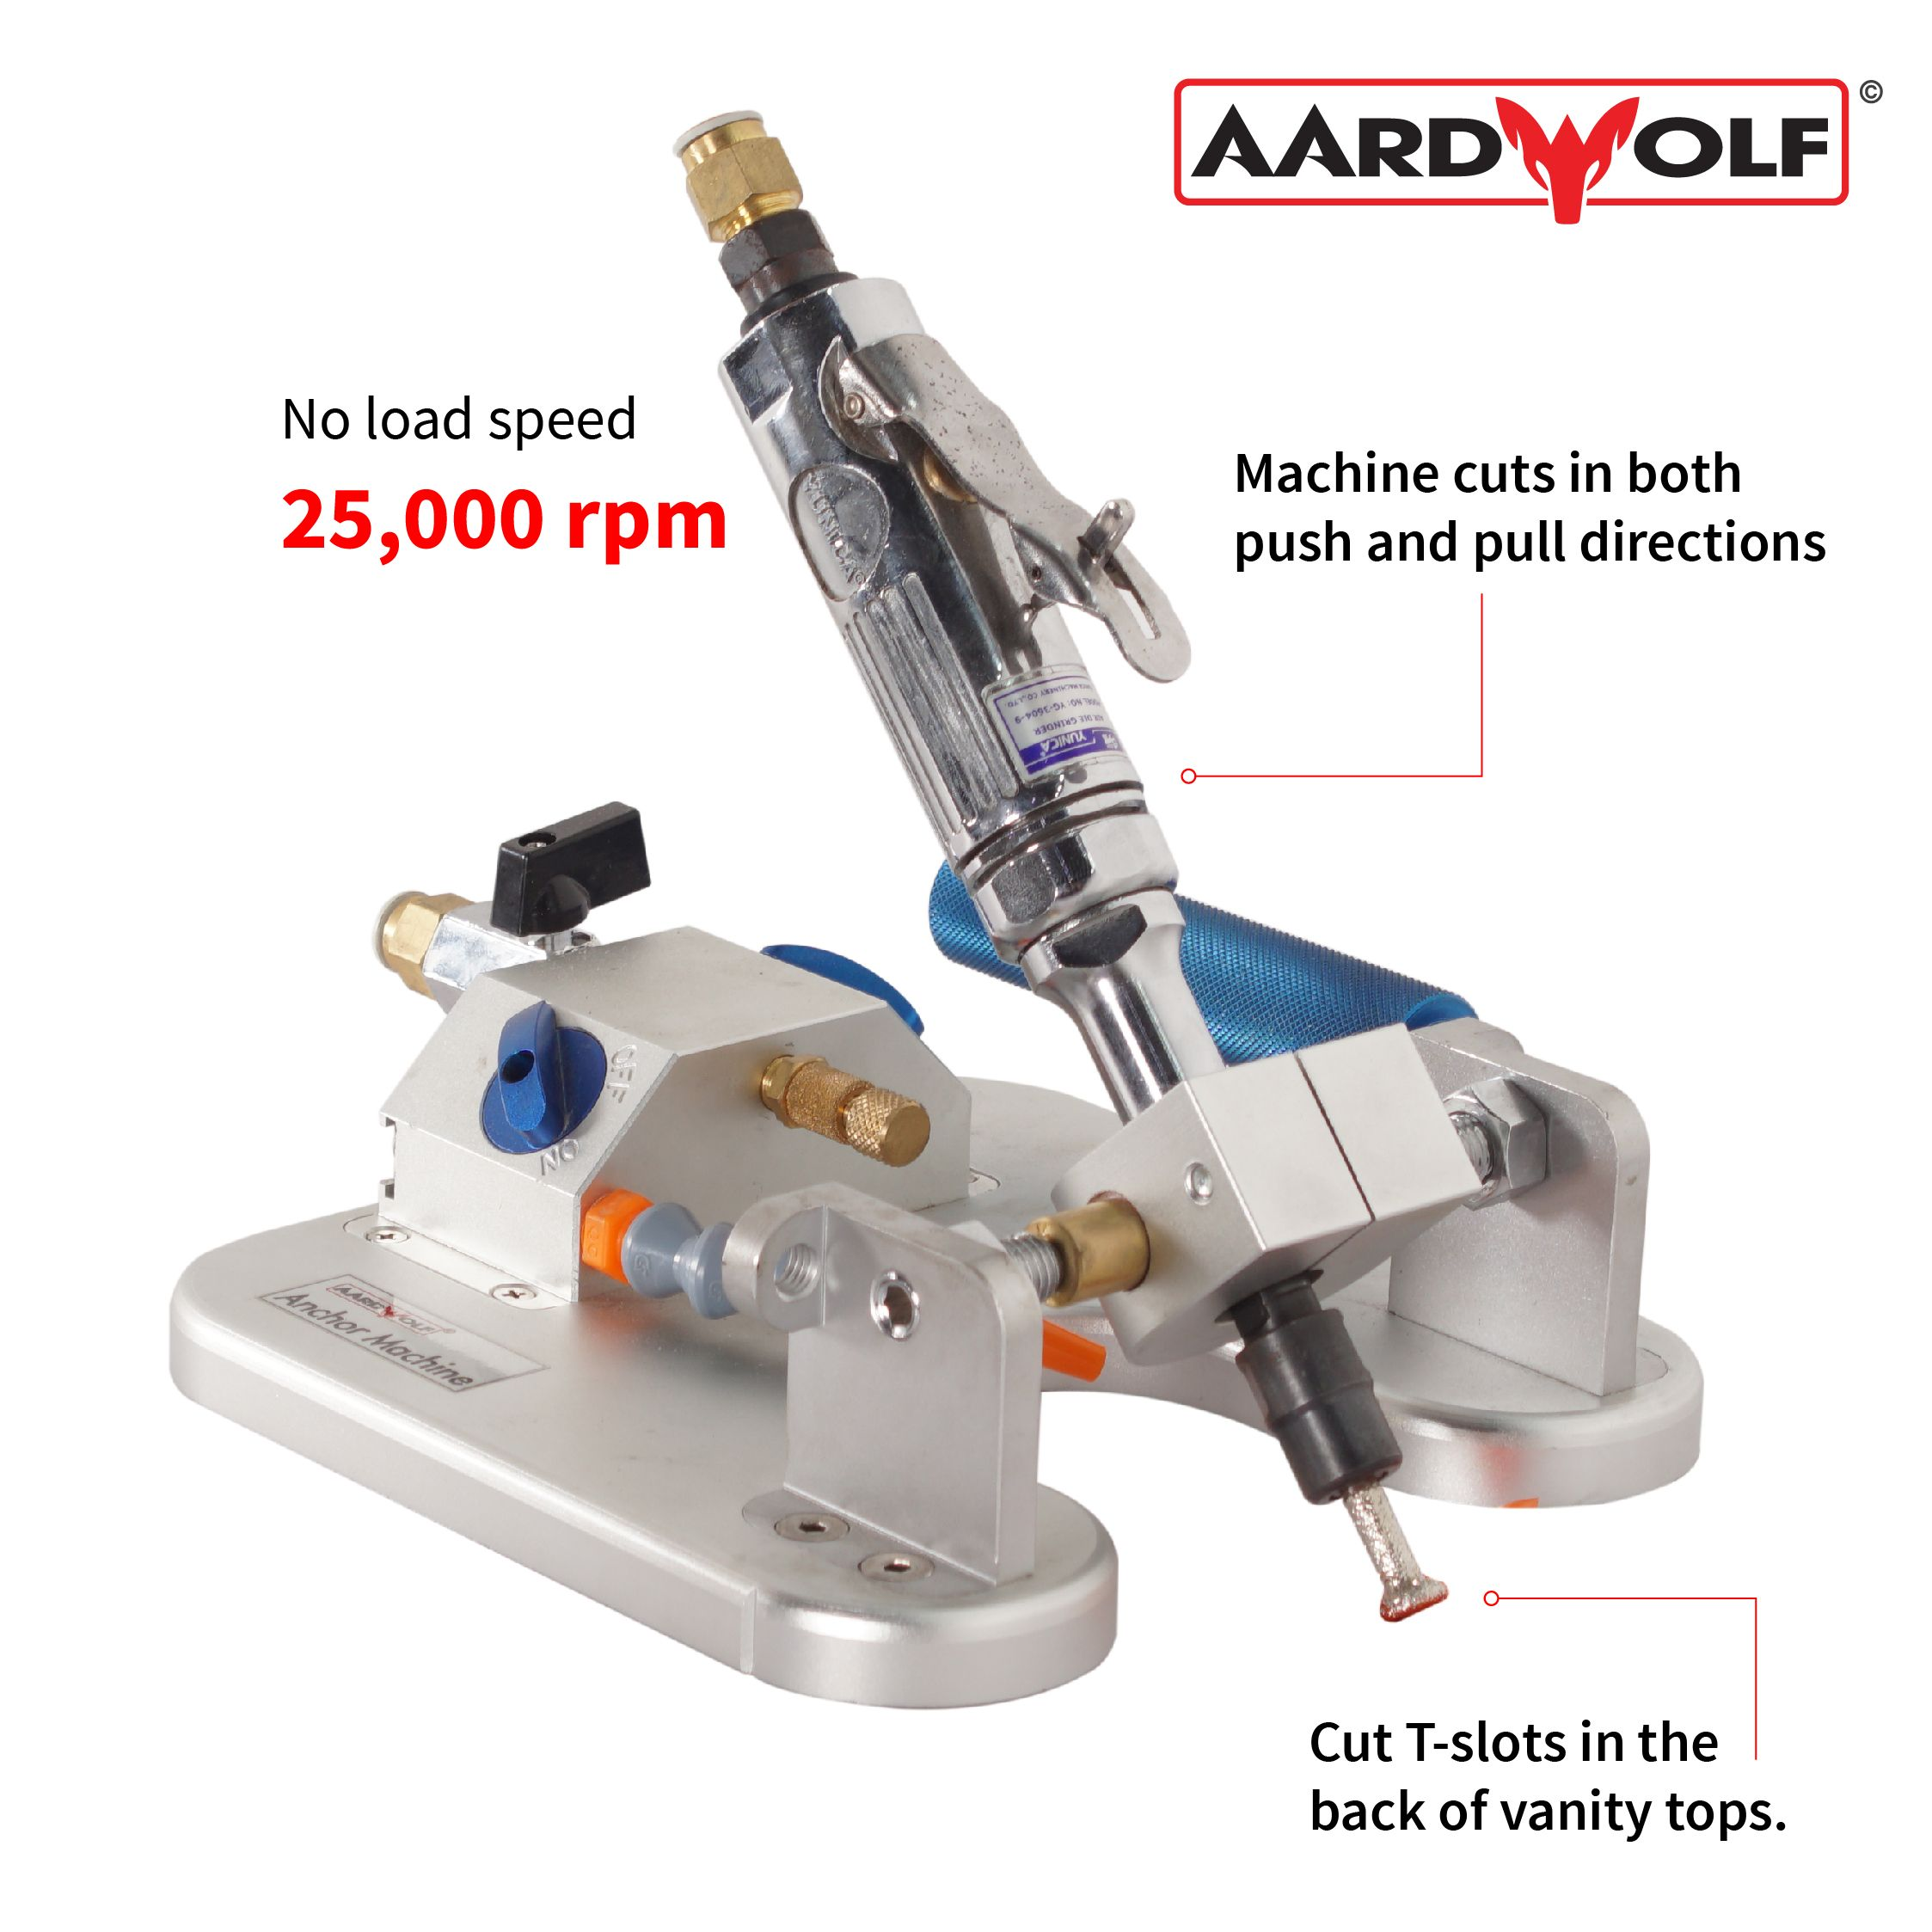 The Pneumatic Anchor Machine manufactured by Aardwolf